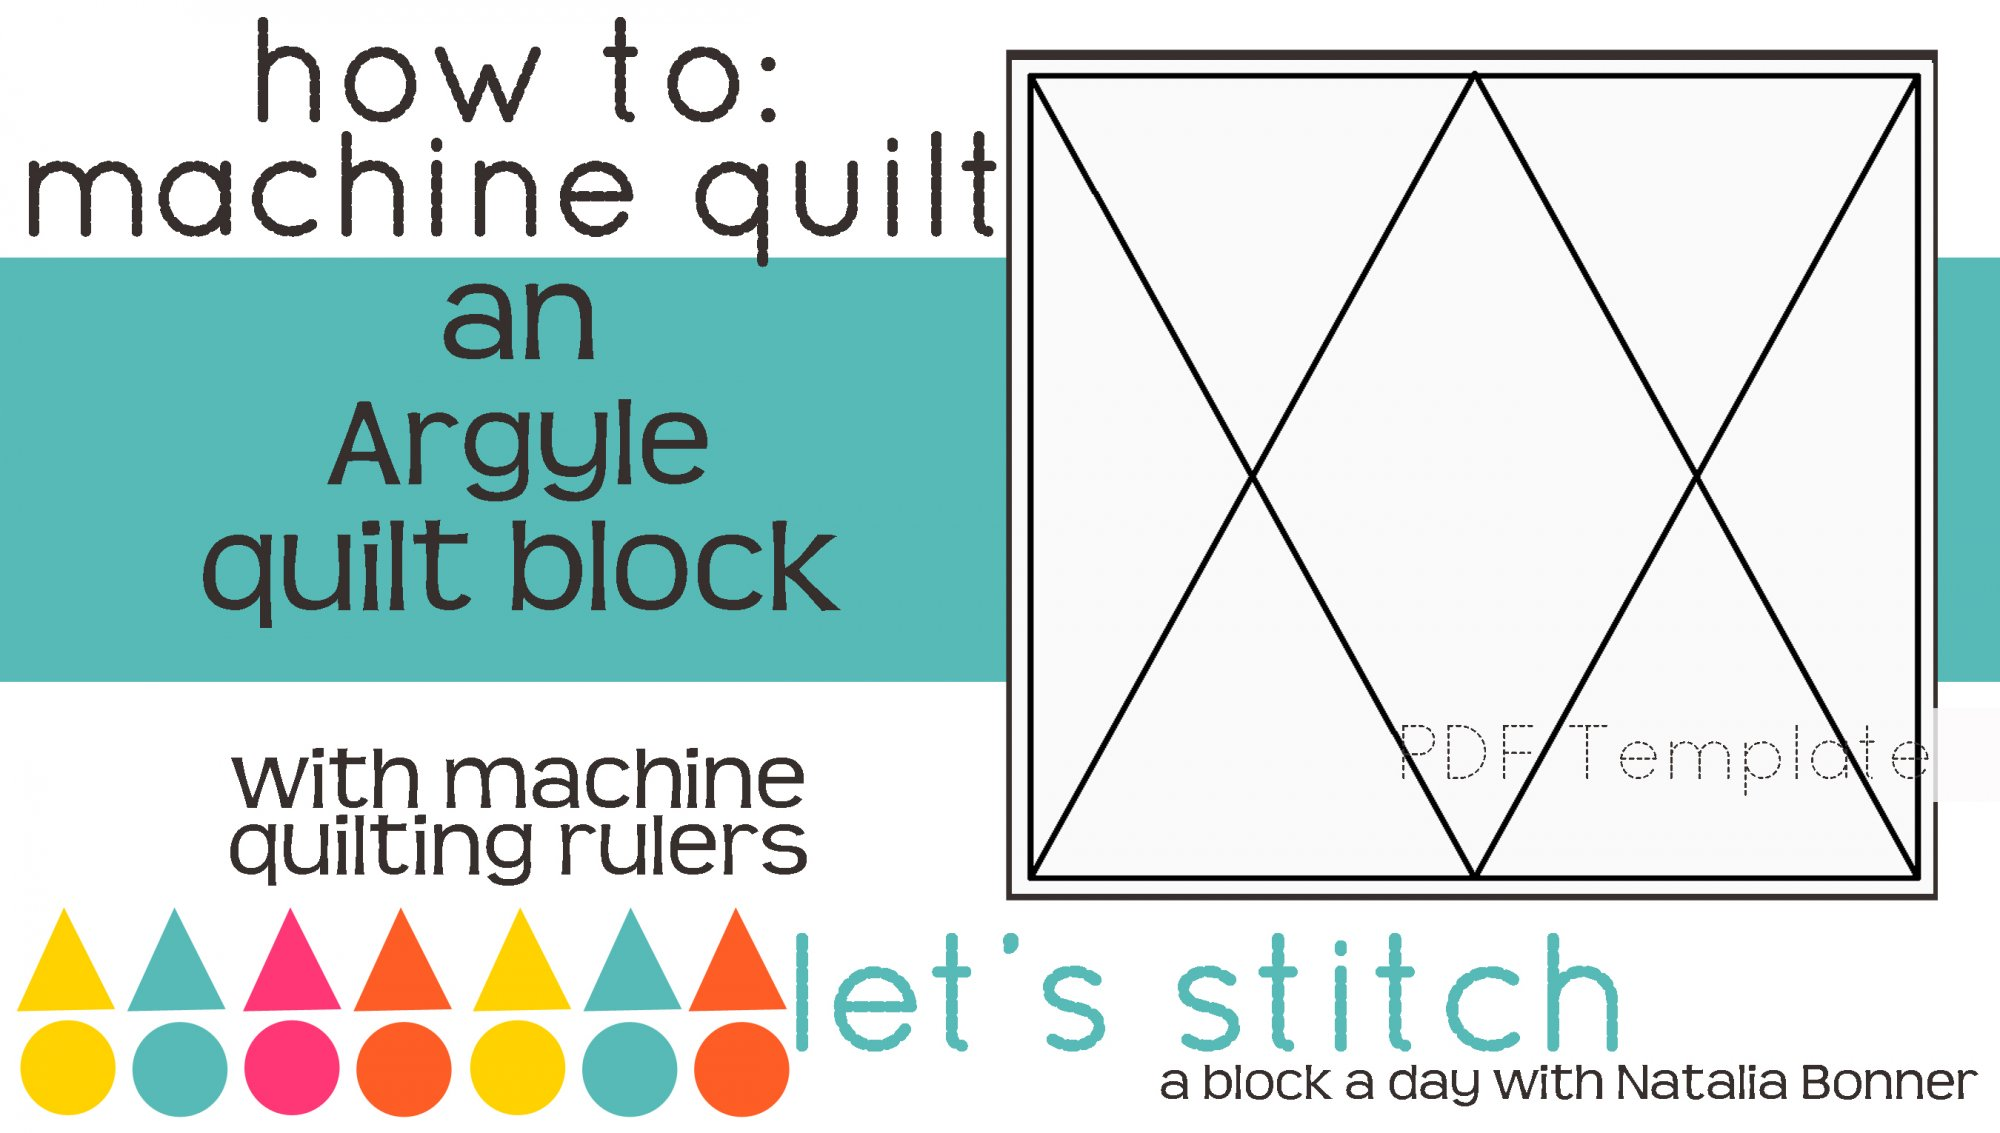 Let's Stitch - A Block a Day With Natalia Bonner - PDF - Argyle